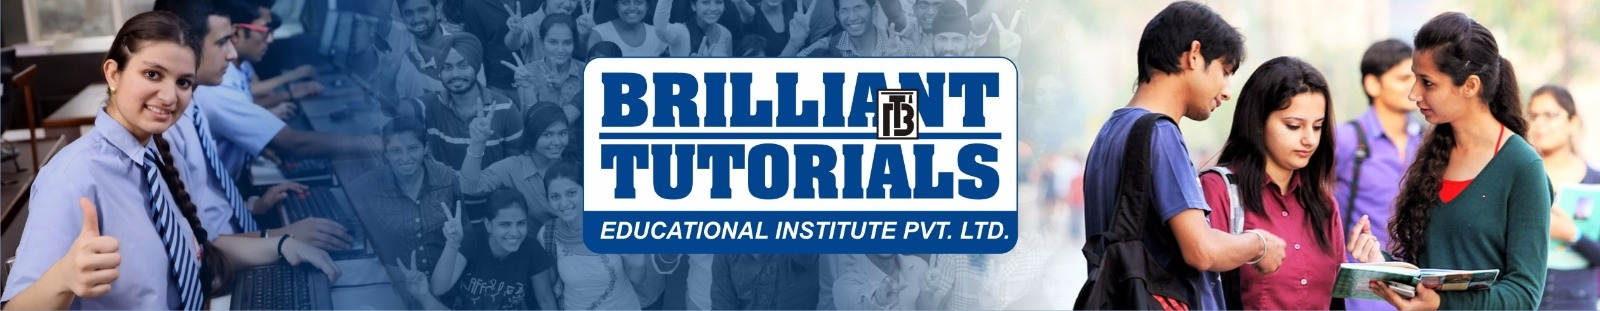 Brilliant Tutorials Educational Institute (@brillianttutorials) Cover Image